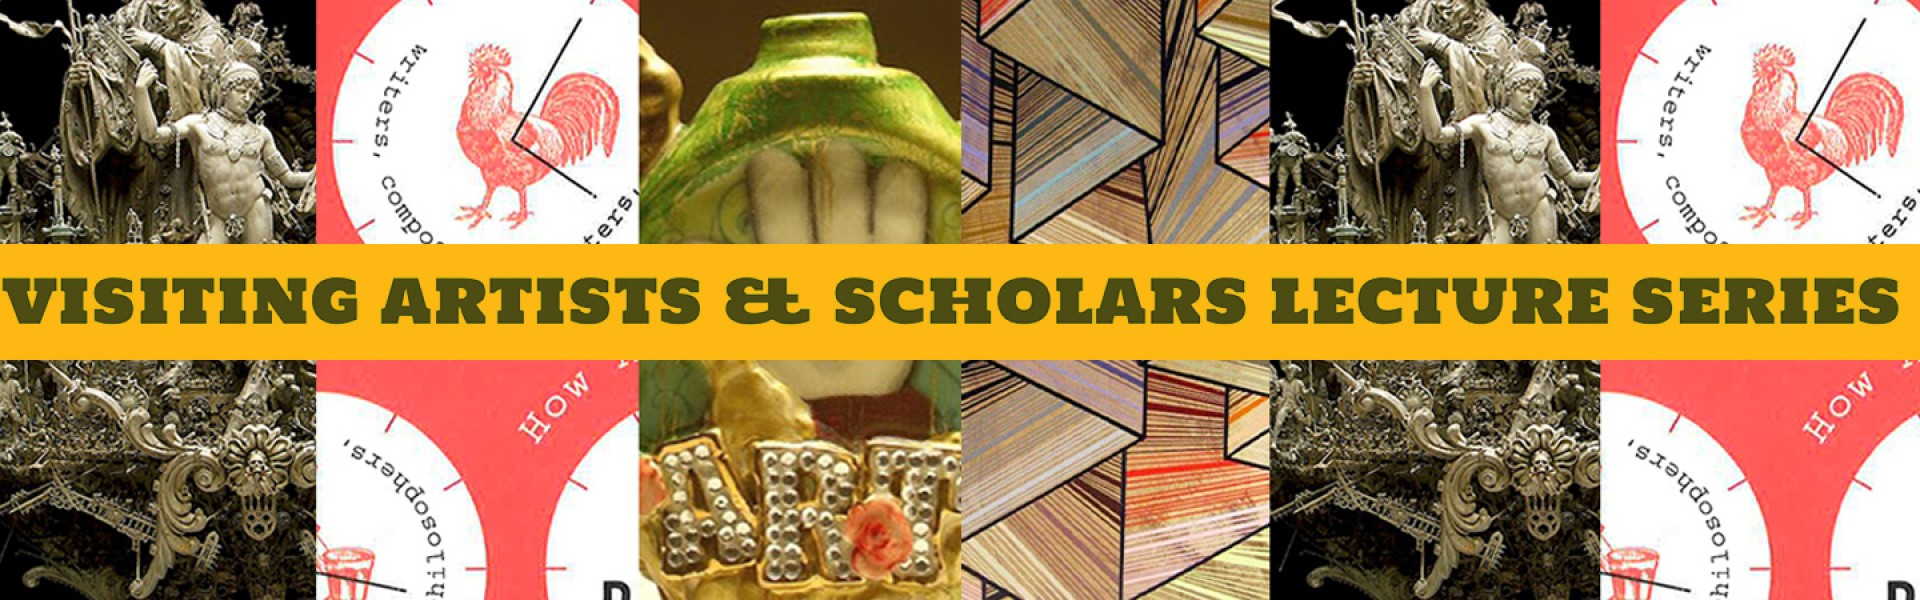 VISITING ARTISTS & SCHOLARS LECTURE SERIES